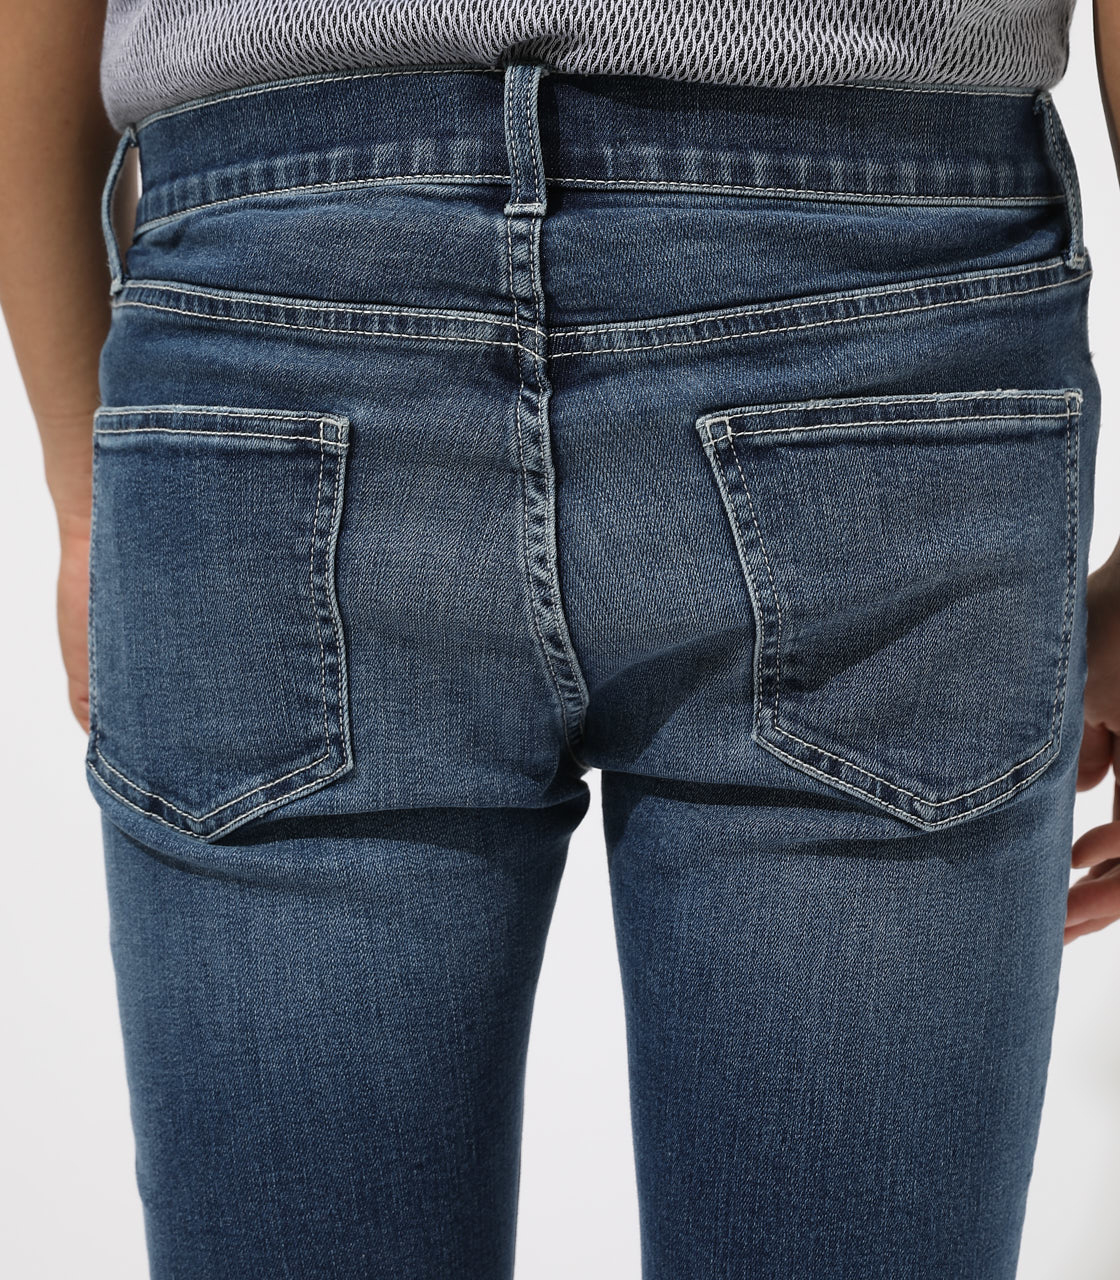 【AZUL BY MOUSSY】WHITE STITCH CRASH SKINNY 詳細画像 BLU 8